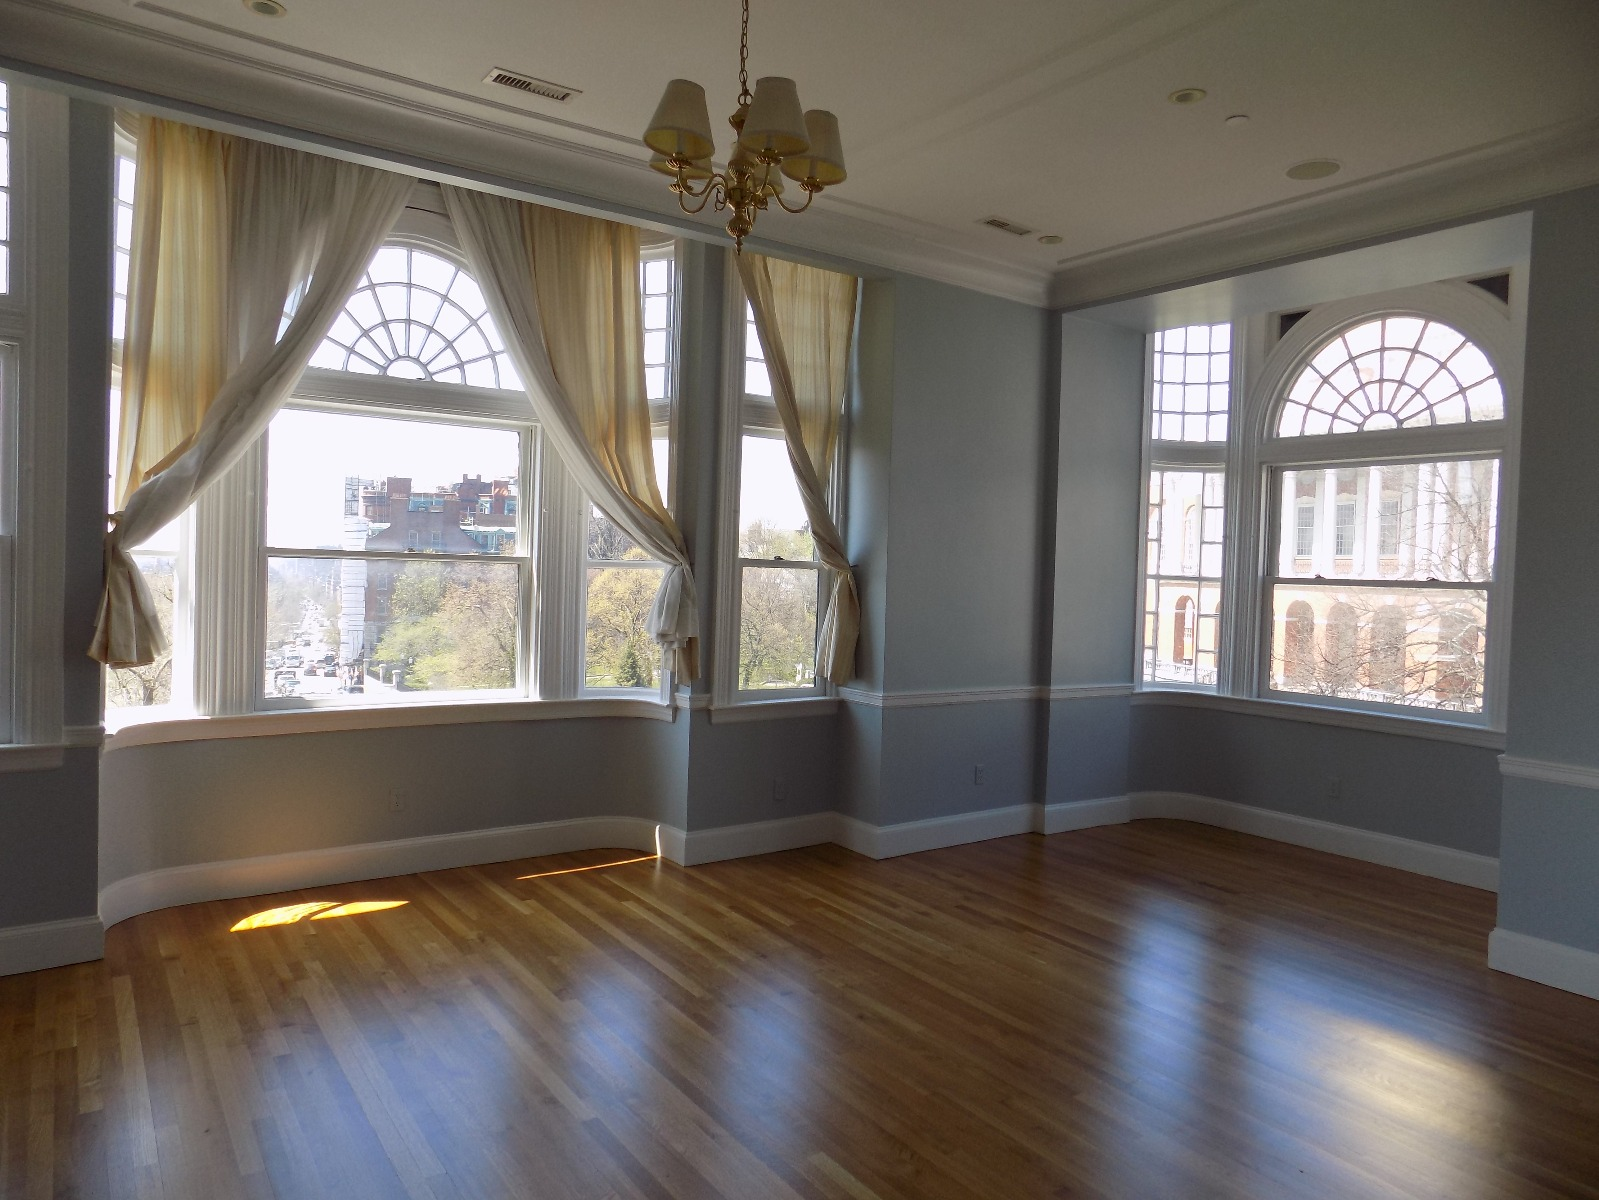 Pet Friendly Beacon Hill 3bed! 3 full baths, Central AC, Laundry in un